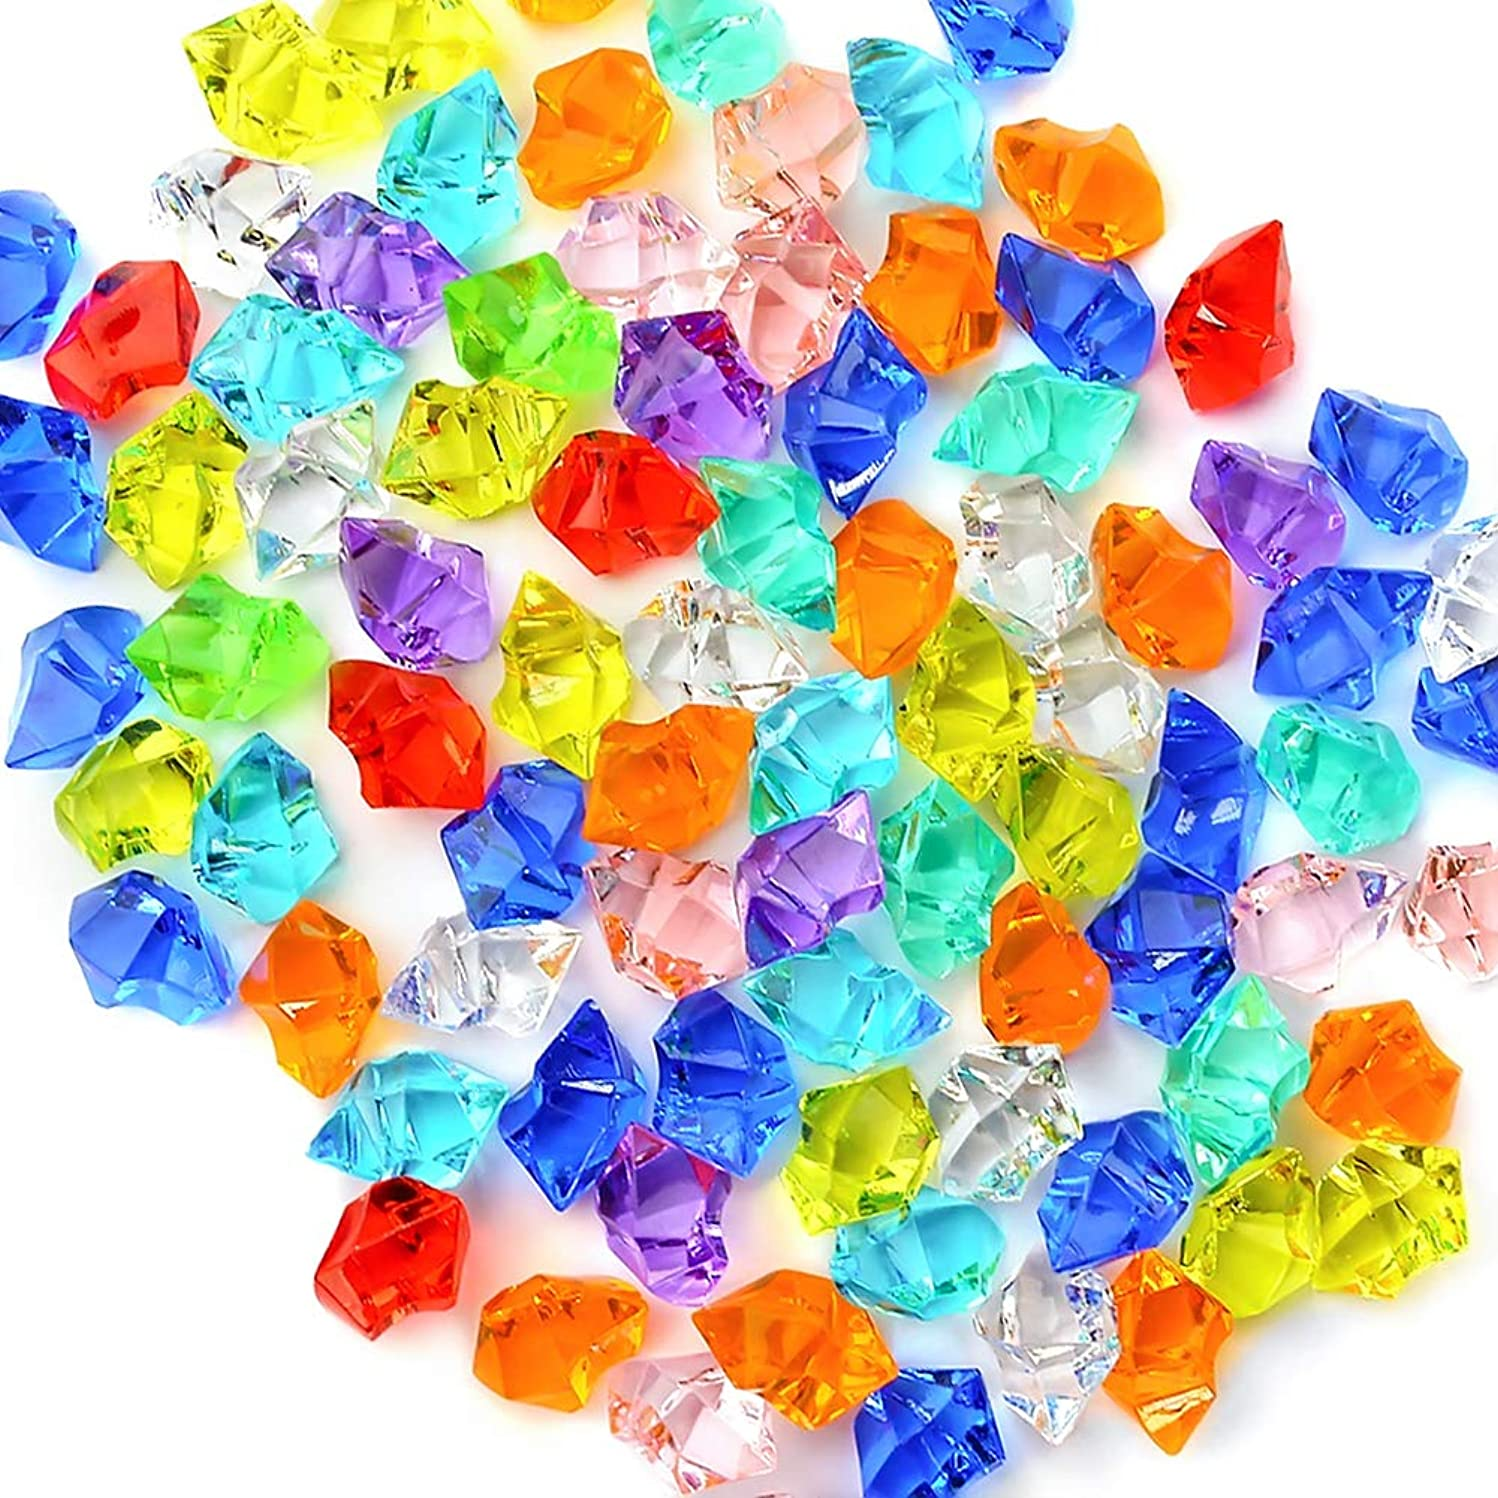 Premium Multicolored Fake Crushed Ice Rocks, 150 PCS Fake Diamonds Plastic Ice Cubes Acrylic Clear Ice Rock Diamond Crystals Fake Ice Cubes Gems for Decoration Wedding Display Vase Fillers by DomeStar